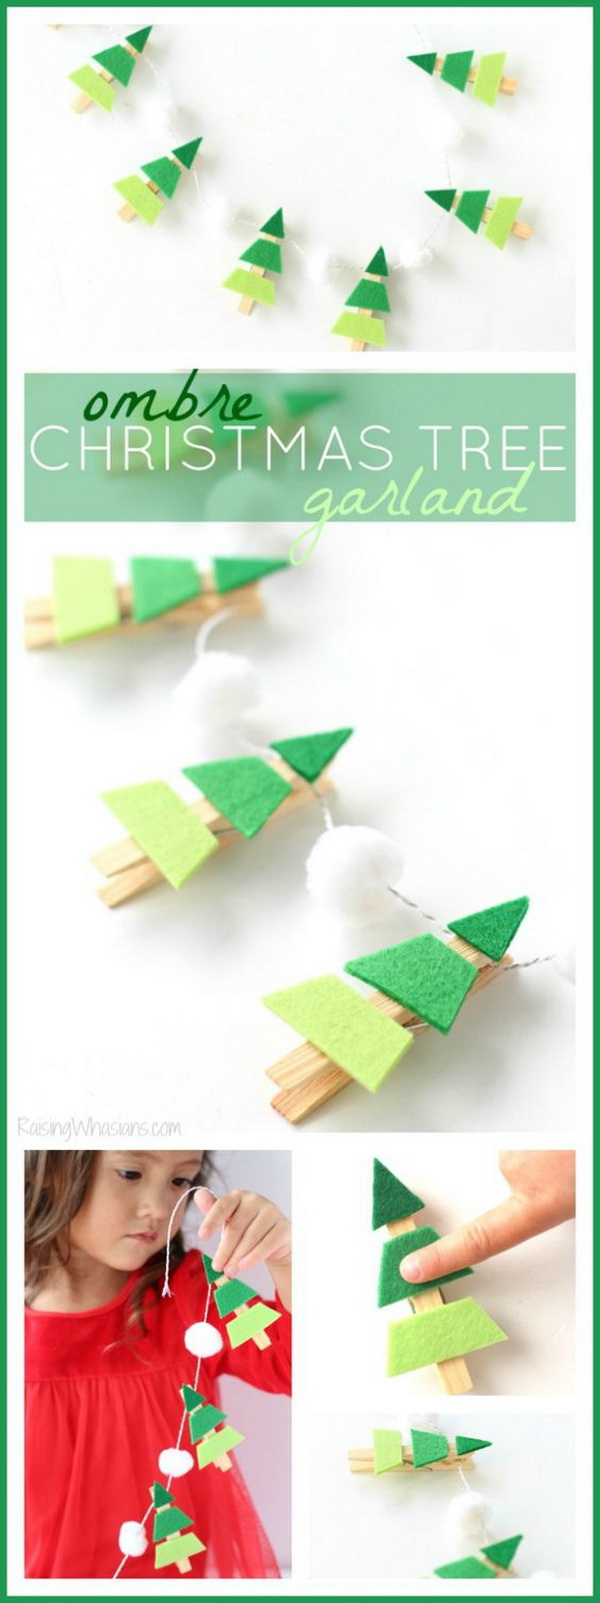 Ombre Christmas Tree Garland. Easy and Fun DIY Christmas crafts for You and Your Kids to Have Fun.